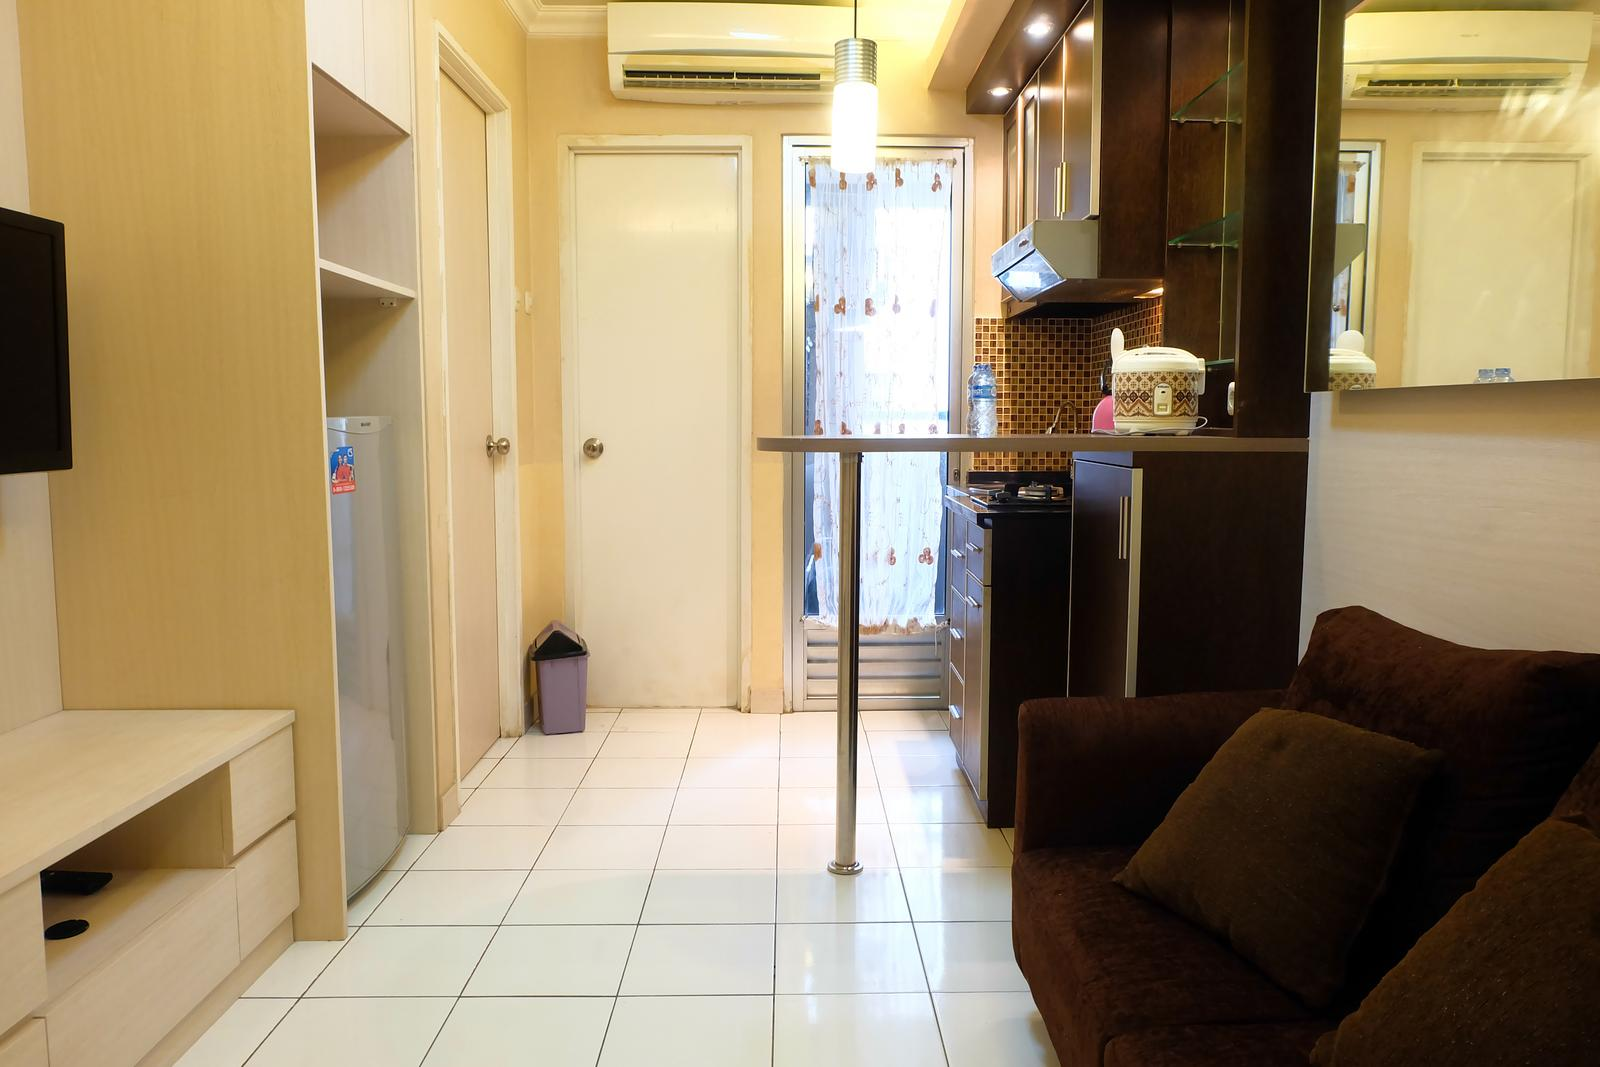 Kalibata City Apartment - 2BR with Access to Shopping Center at Kalibata Apartment By Travelio